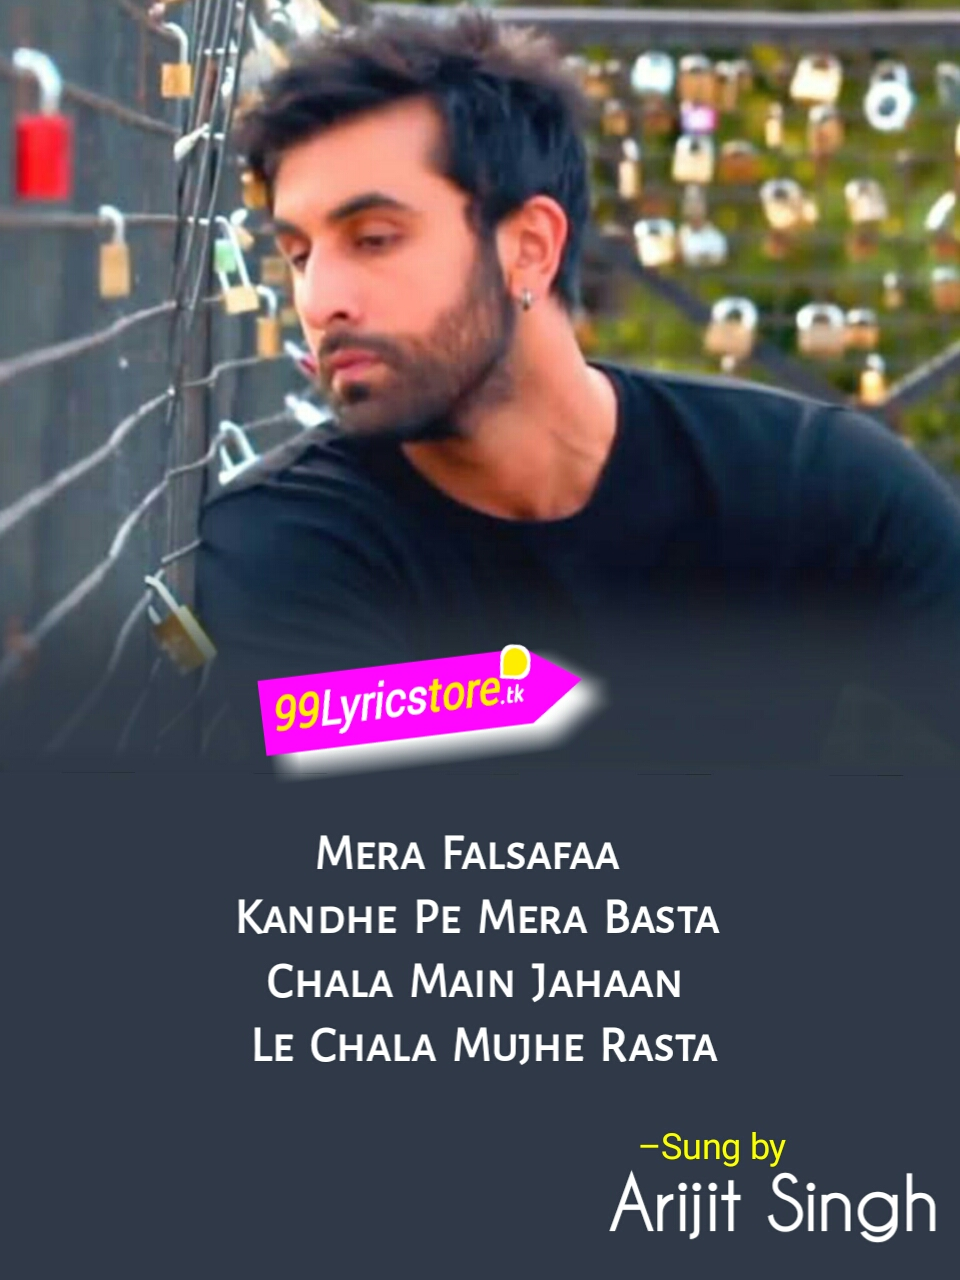 Arijit Singh Song Lyrics, Top Arijit Singh Song Lyrics, Ranbir Kapoor Song Lyrics, Deepika Pandunkon Song Lyrics, Top Bollywood Song Lyrics, Hindi Song Lyrics